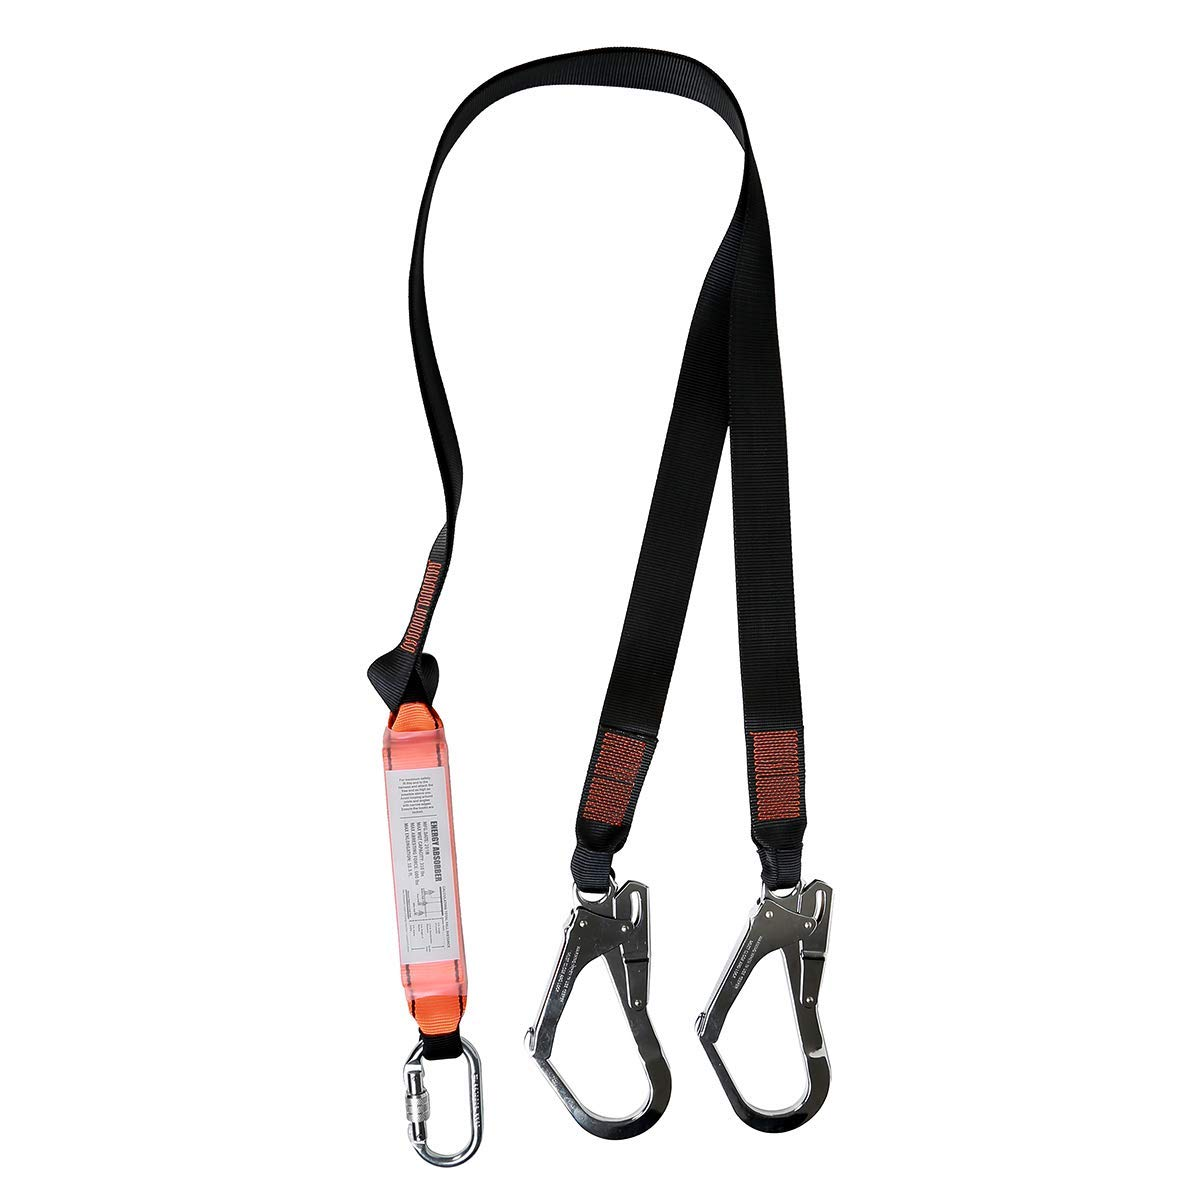 KSEIBI 422006 Single Leg Snap Hook and Two Scaffolding Hook w 6-Foot Internal Shock Lanyard Fall Protection Equipment for Safety Harness by KSEIBI (Image #2)